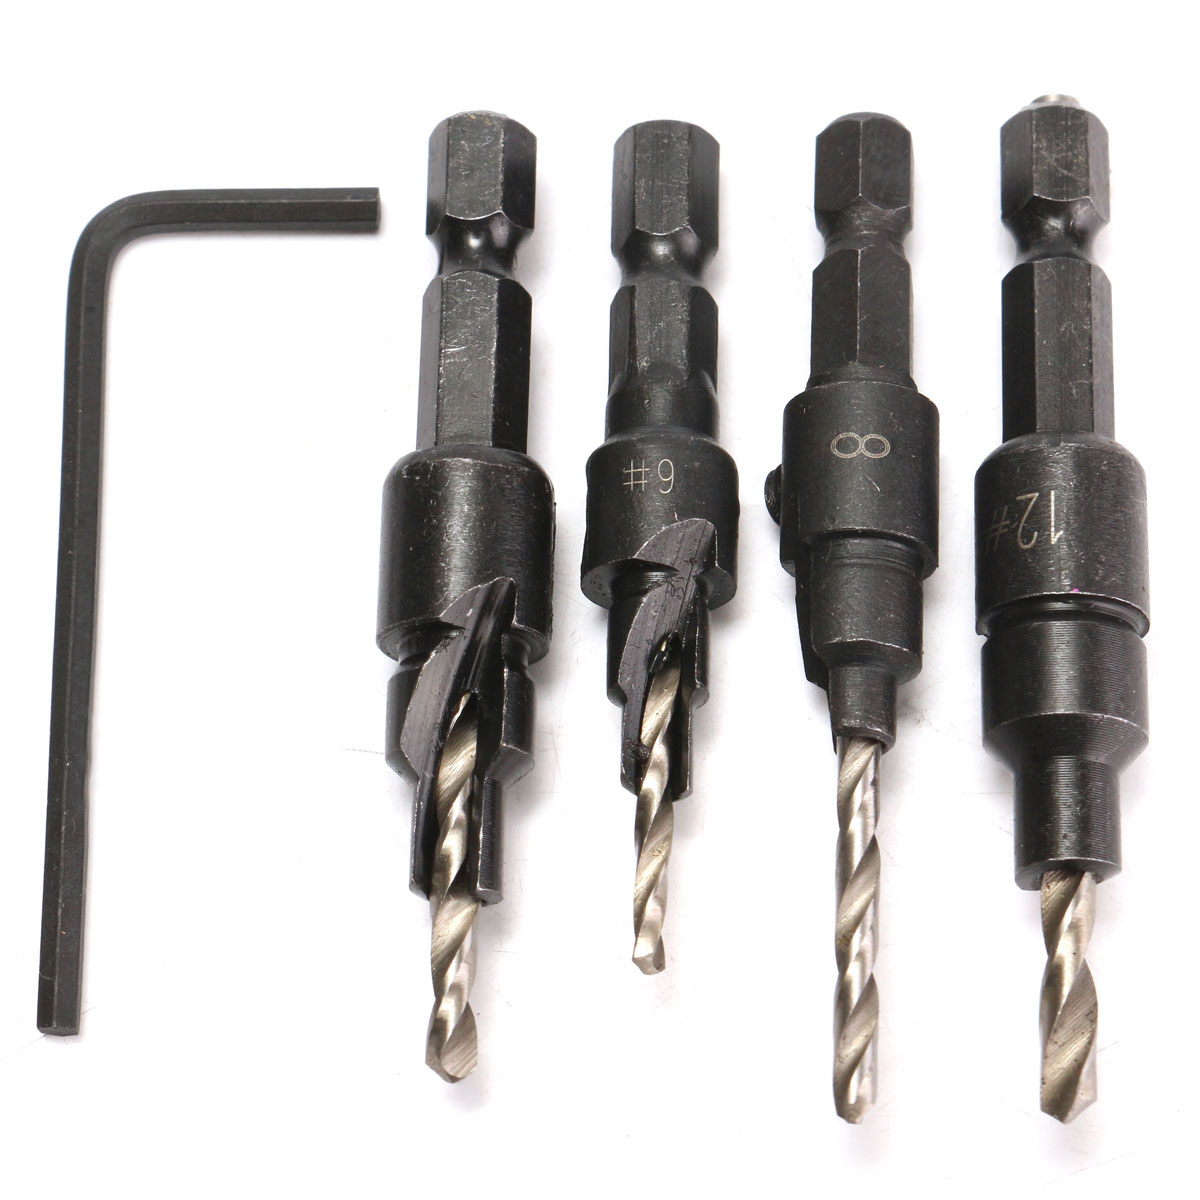 4X Countersink HSS Taper Drill 4241 Bits 1 4 Hex Shank Sets #6 #8 #10 #12 W  Key by